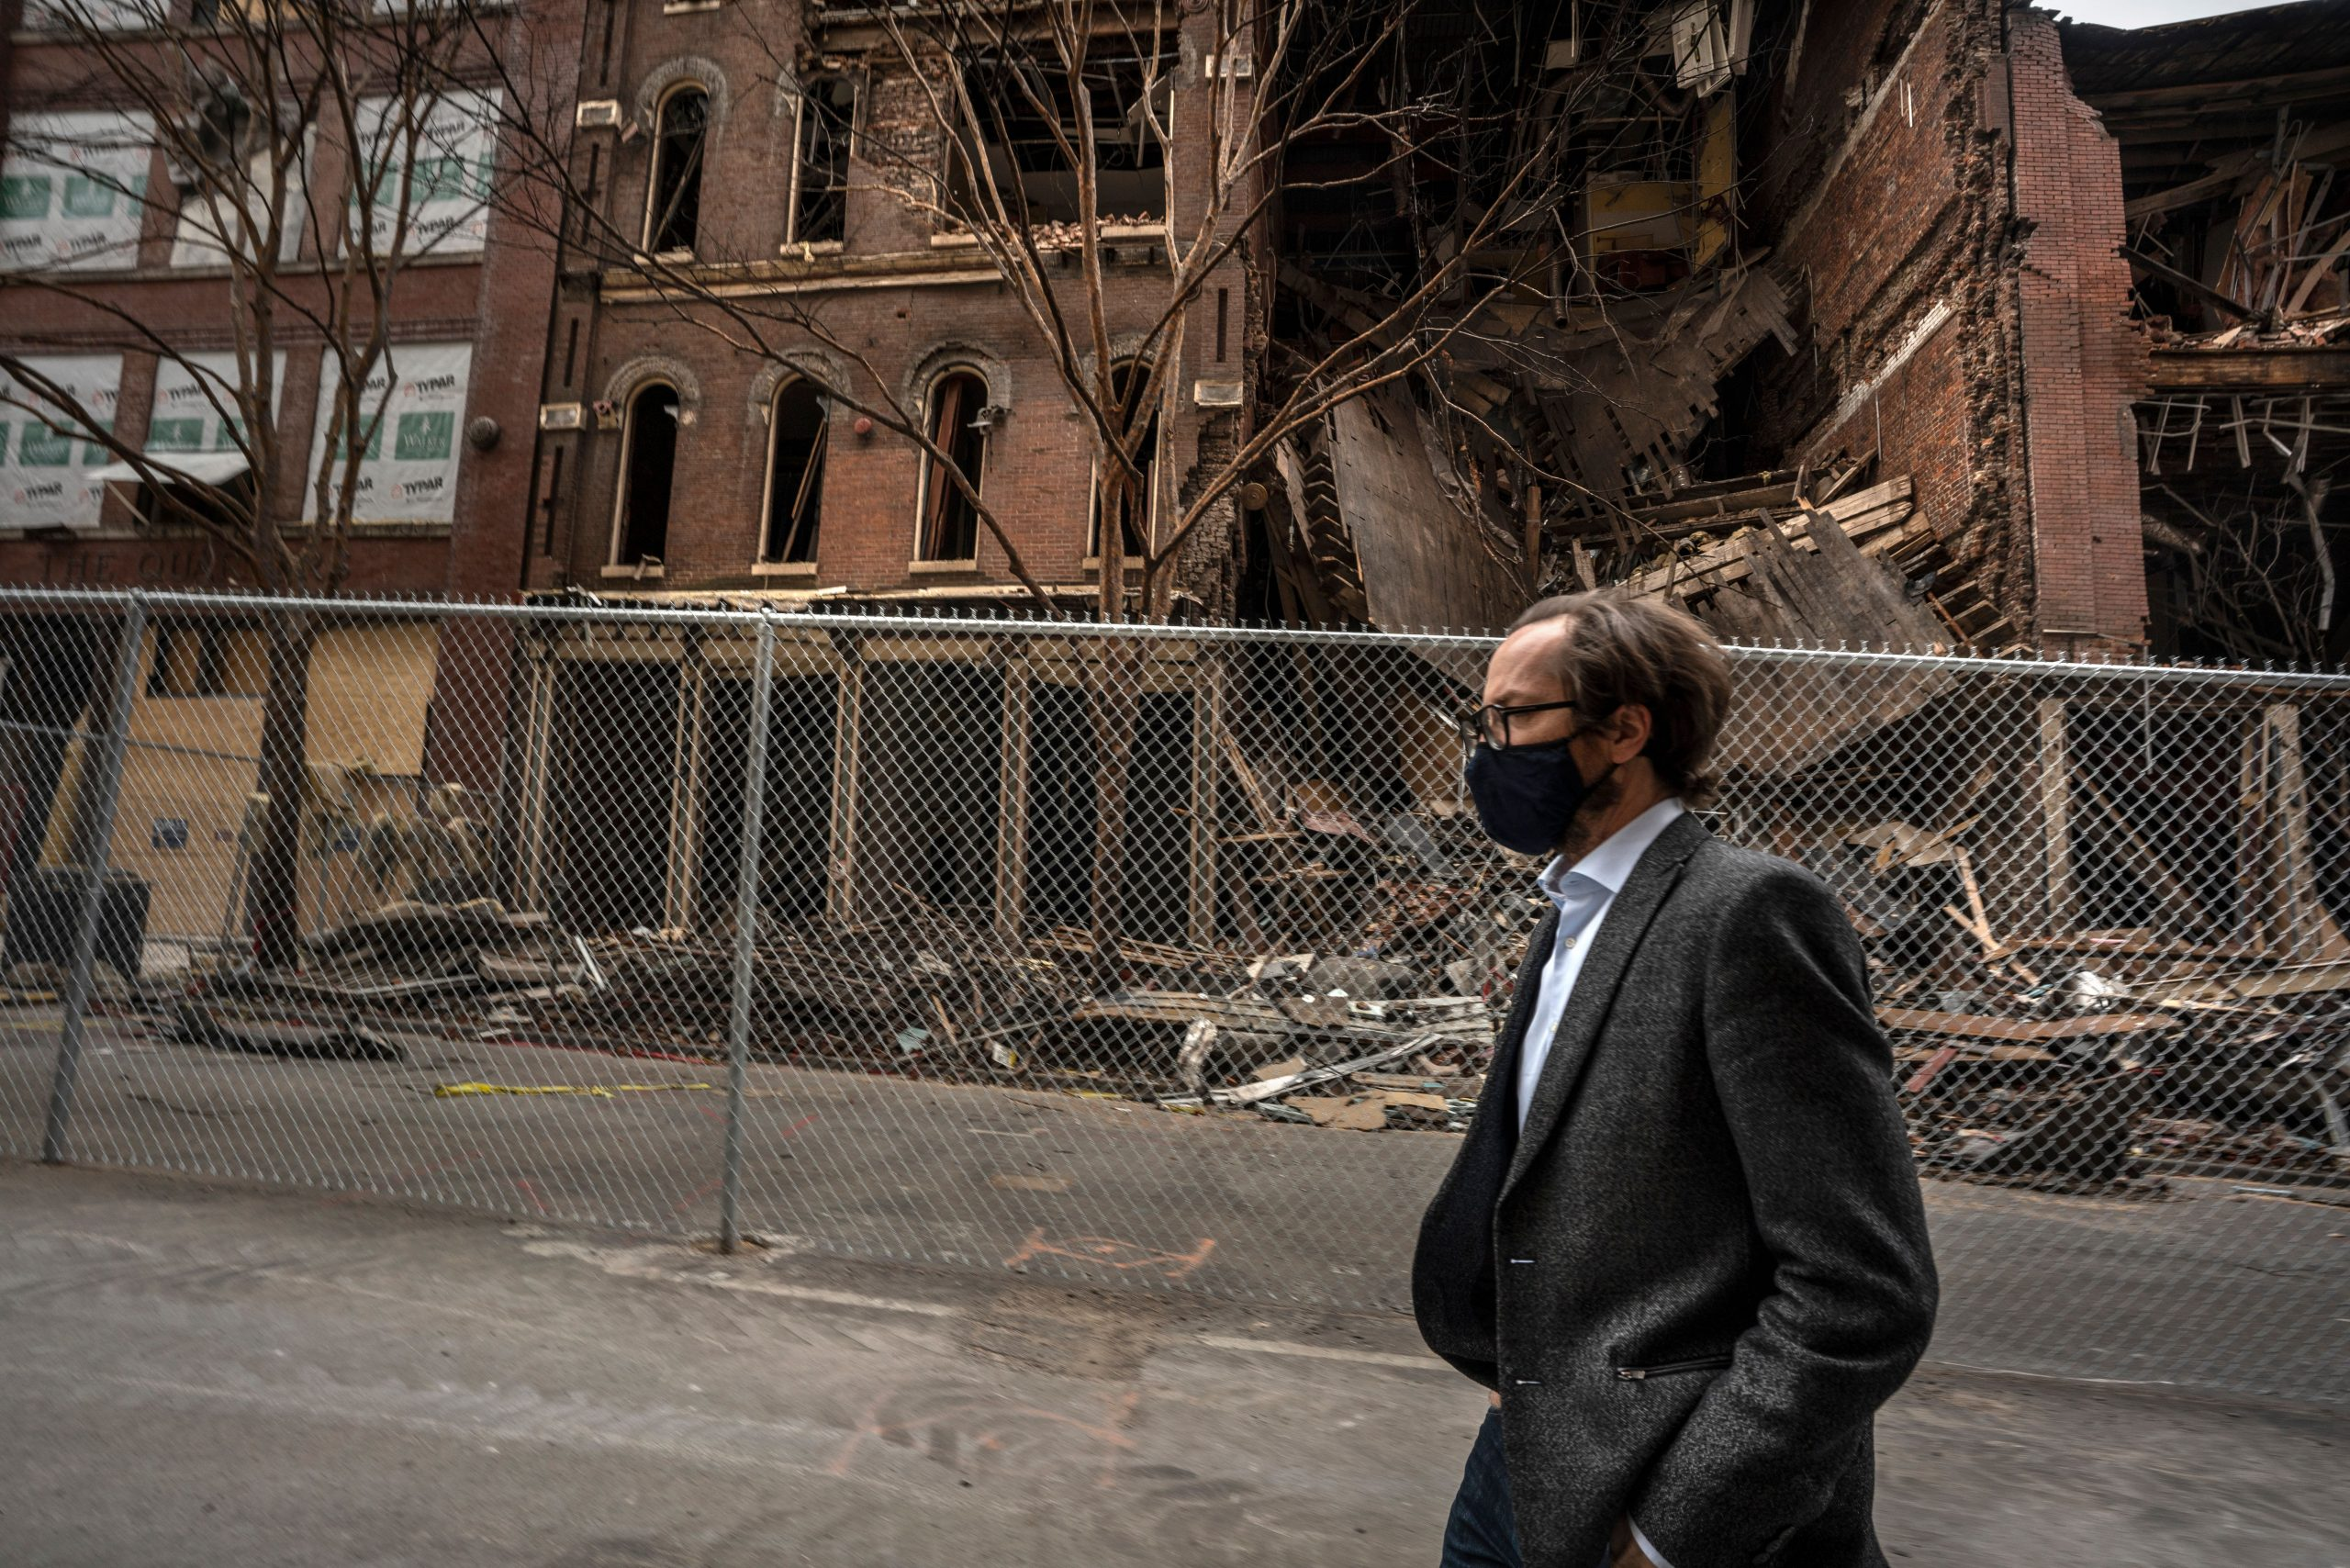 Metro Councilmember Freddie O'Connell walks down Second Avenue in Nashville, site of a Christmas Day bombing. (Photo: John Partipilo)